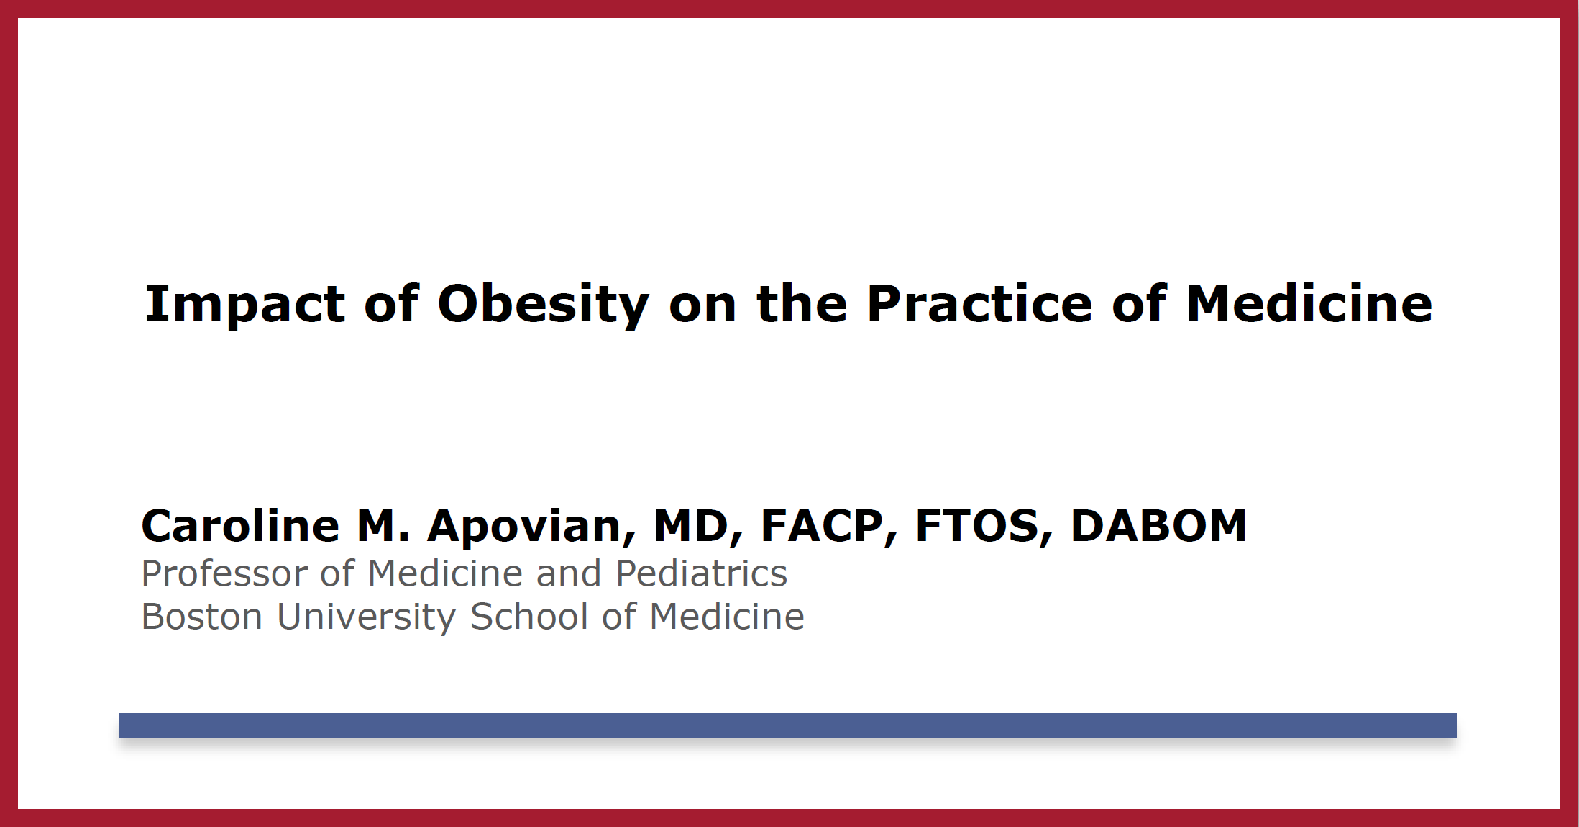 Impact of Obesity on the Practice of Medicine